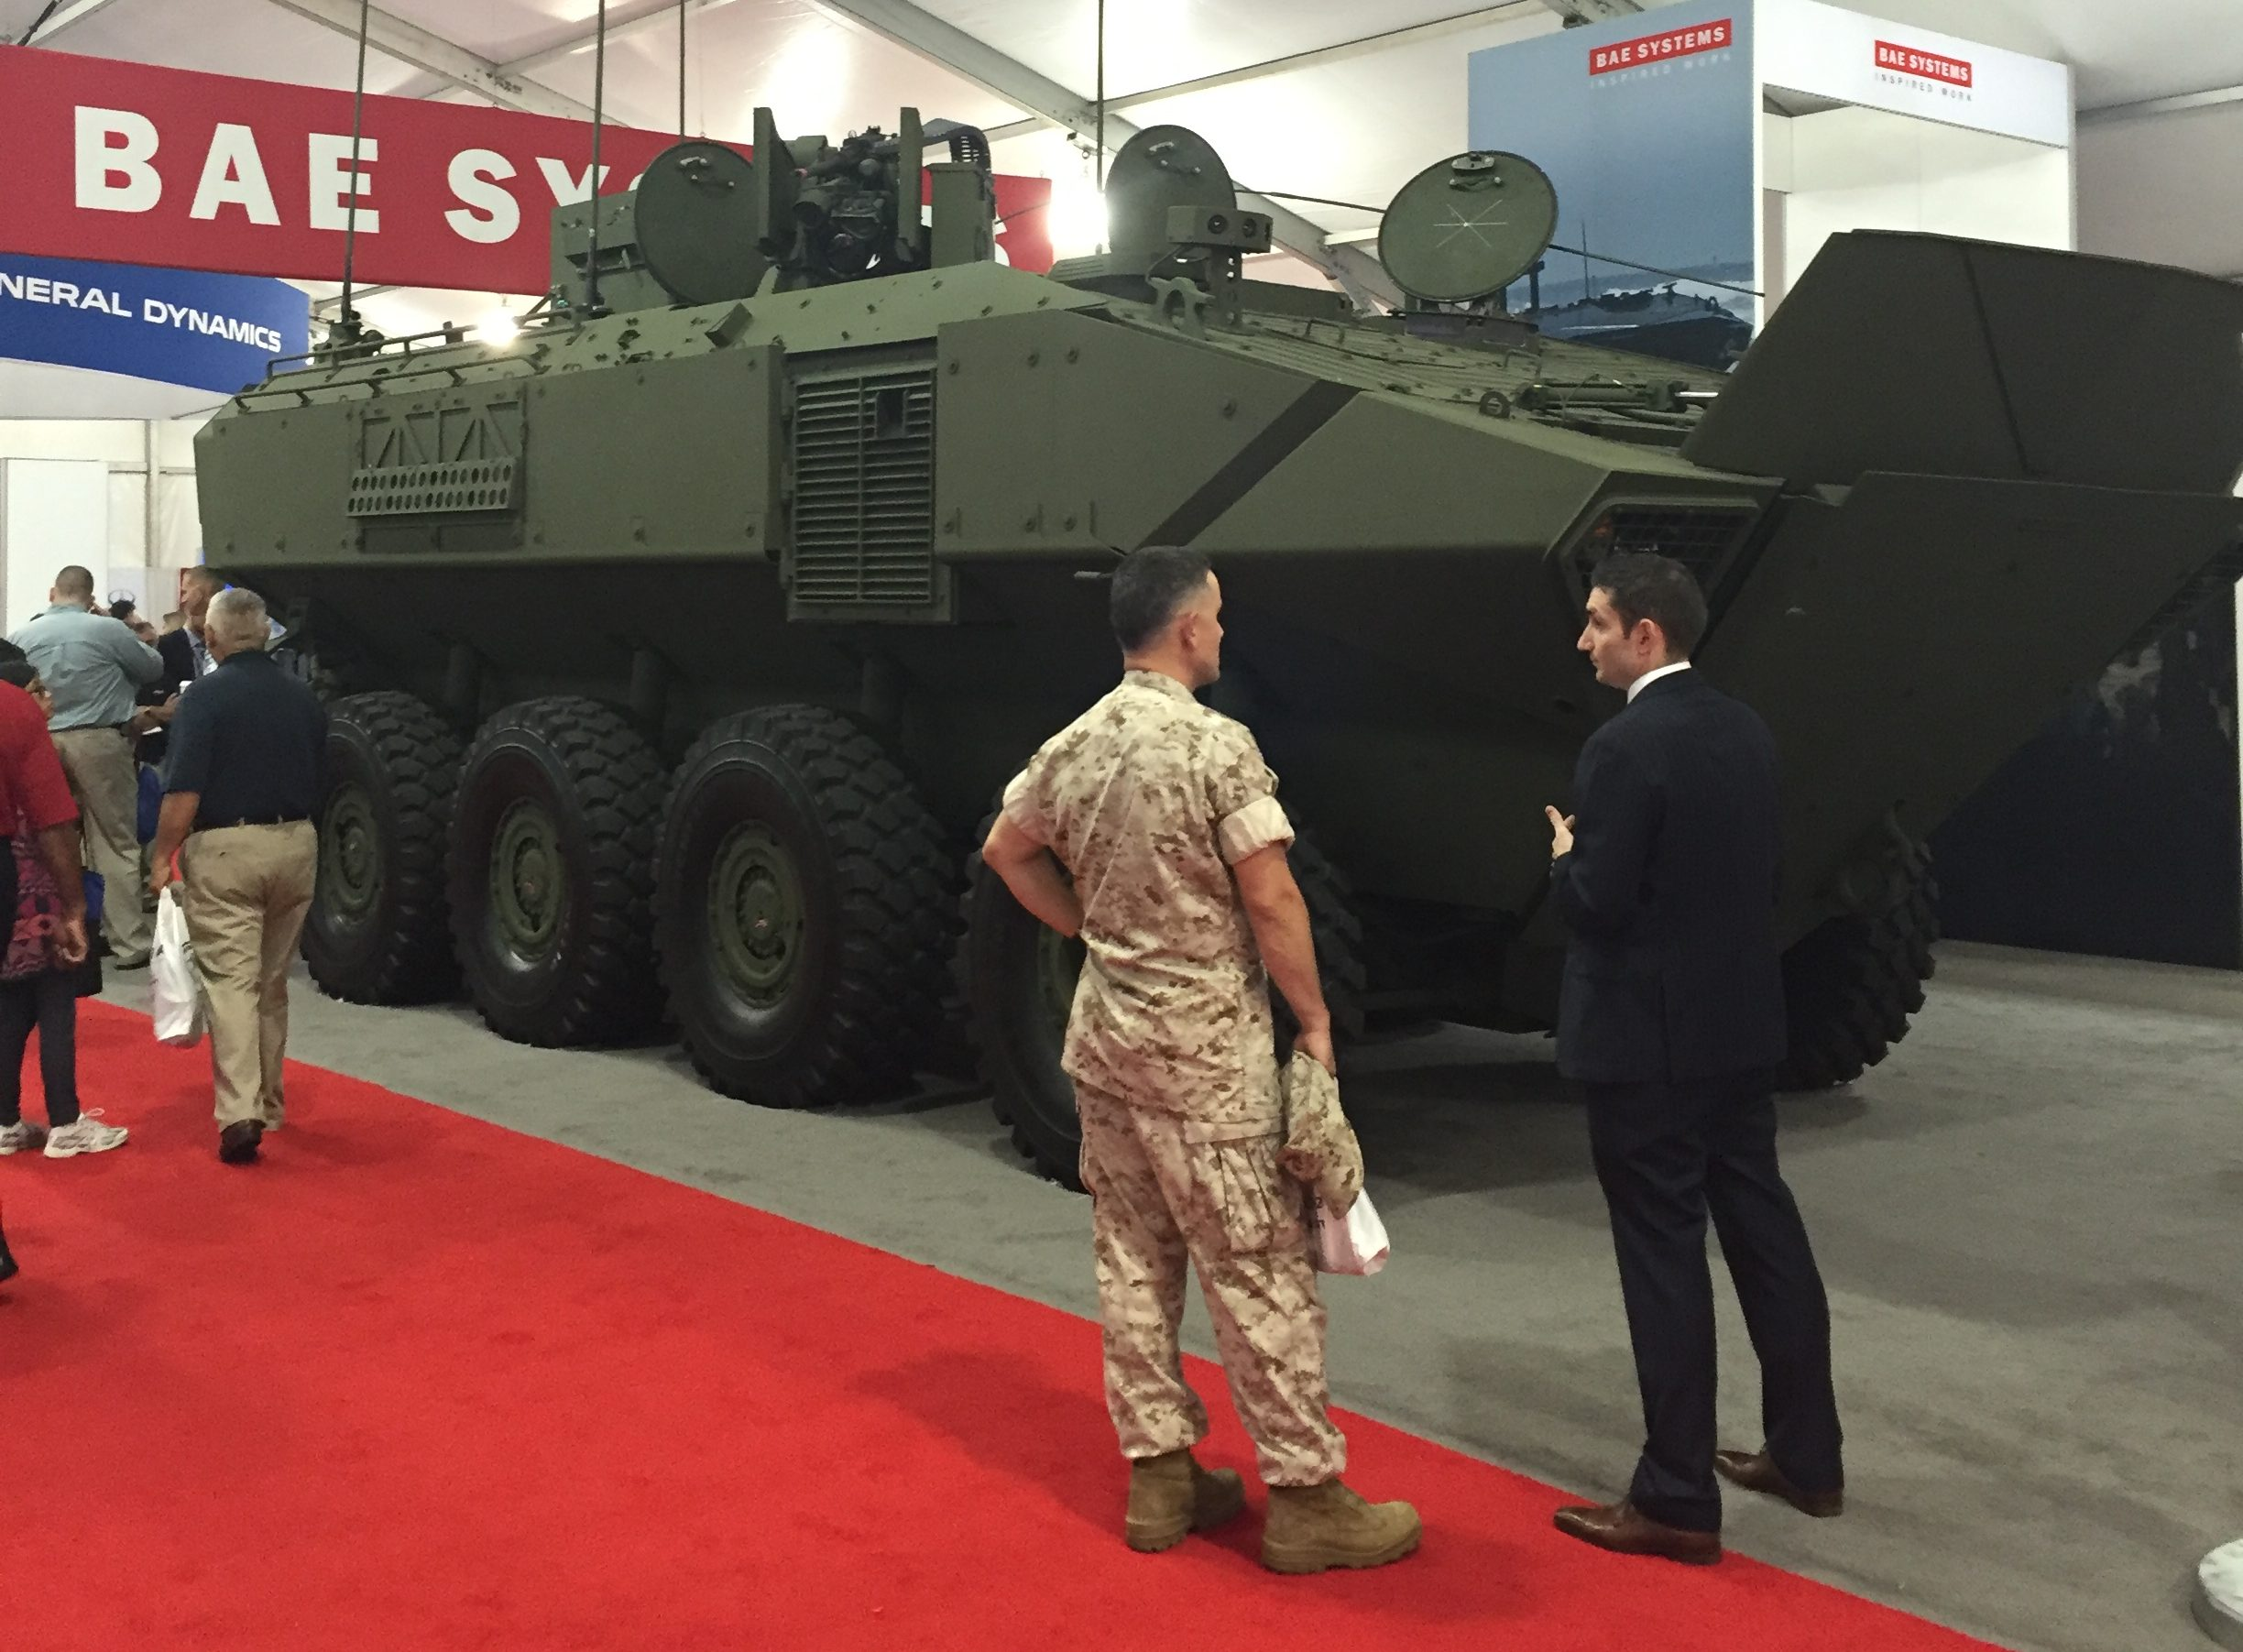 09274ecb77 BAE Unveils 1st Amphibious Combat Vehicle For Marines « Breaking Defense -  Defense industry news